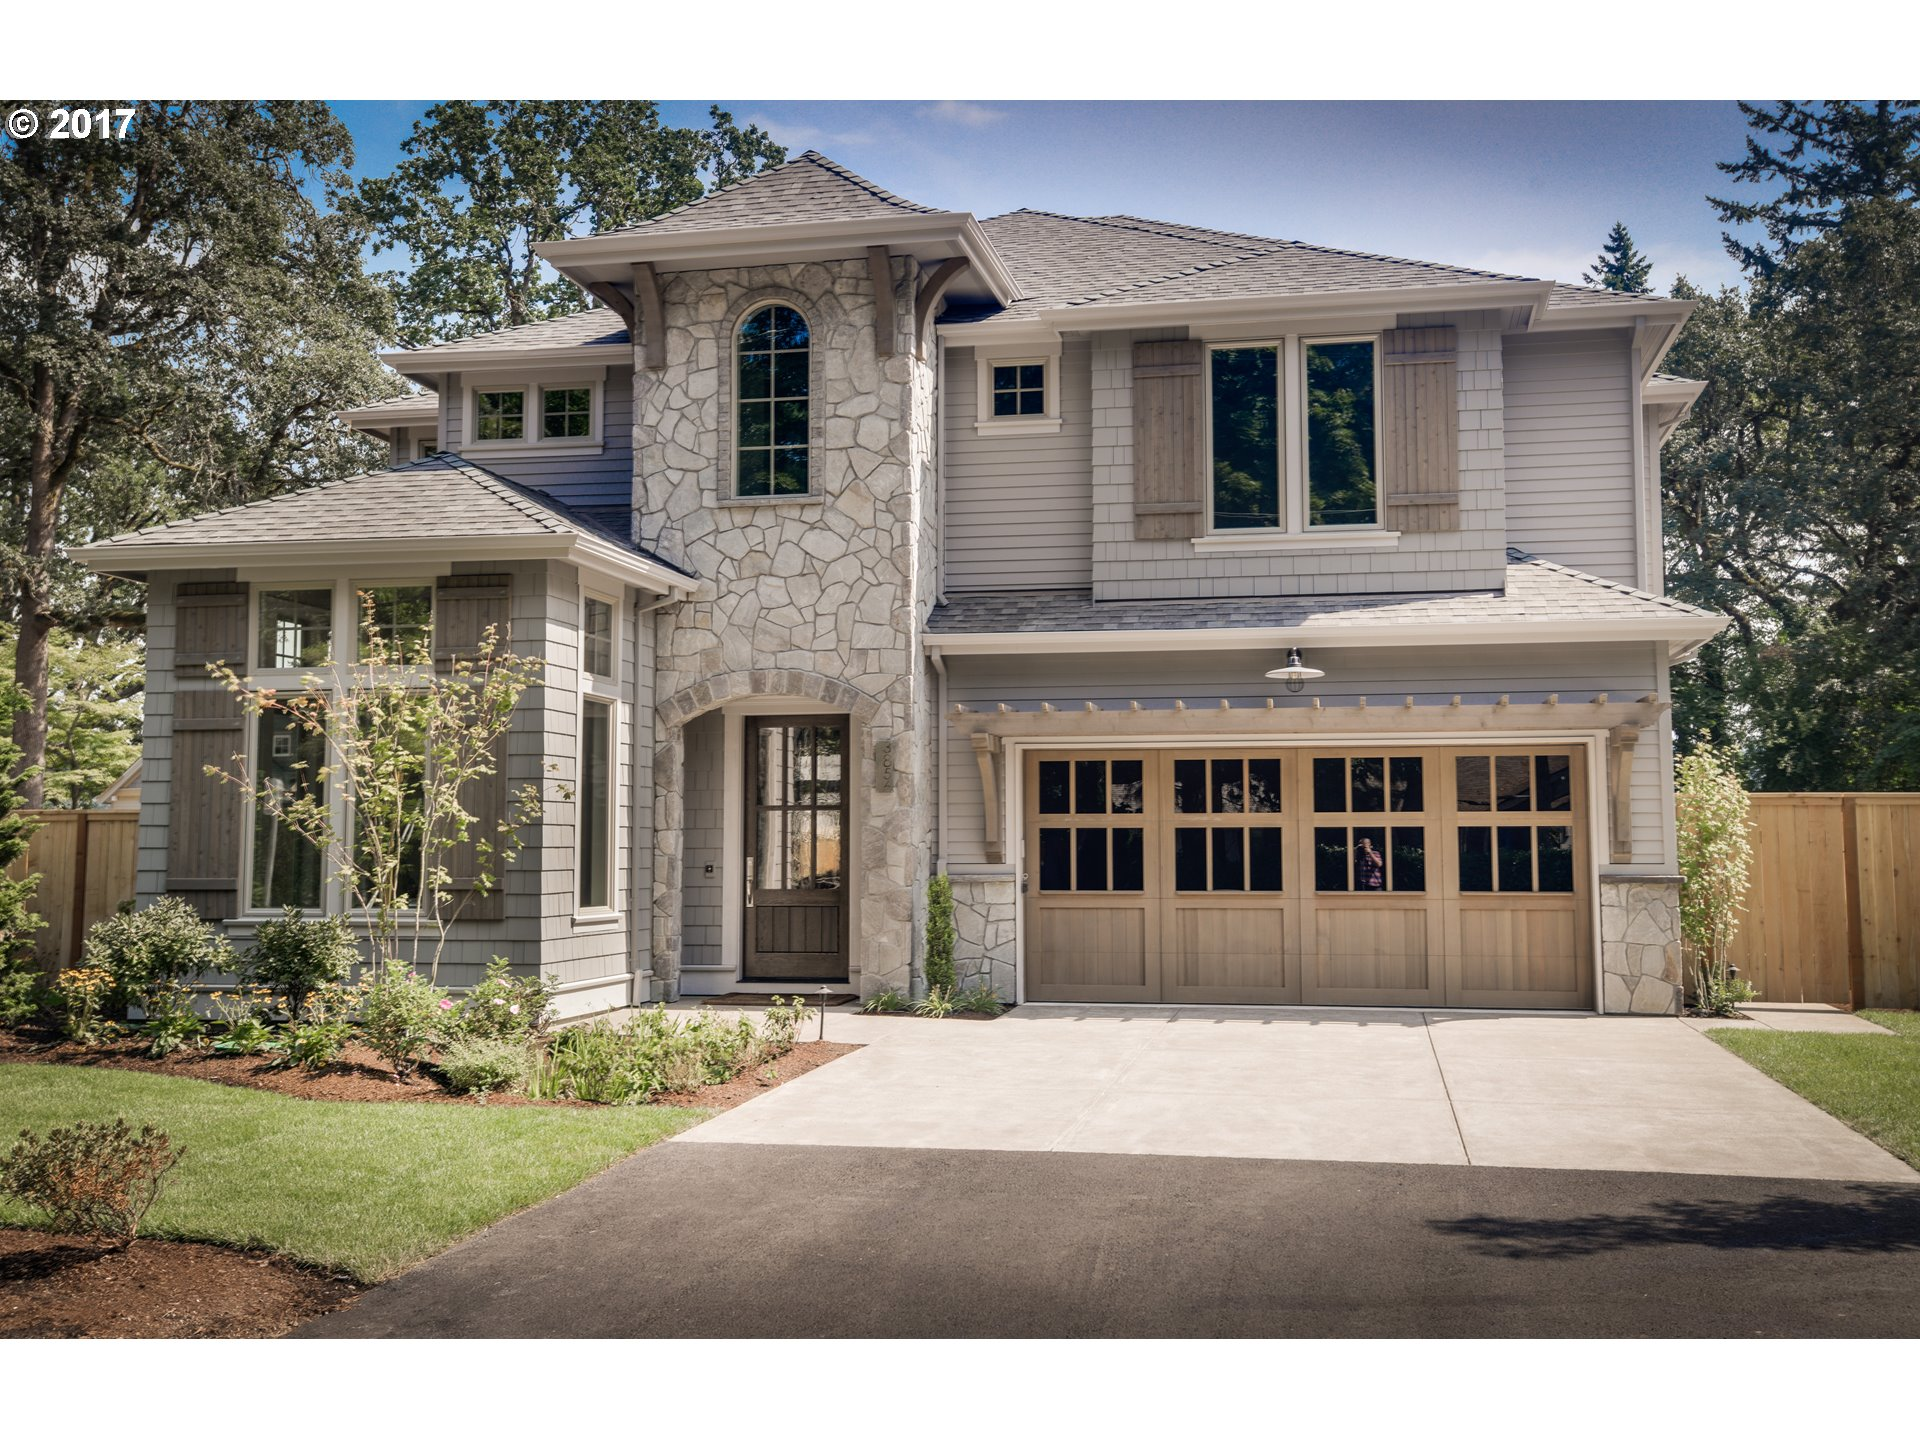 3856 UPPER DR, Lake Oswego, OR 97035